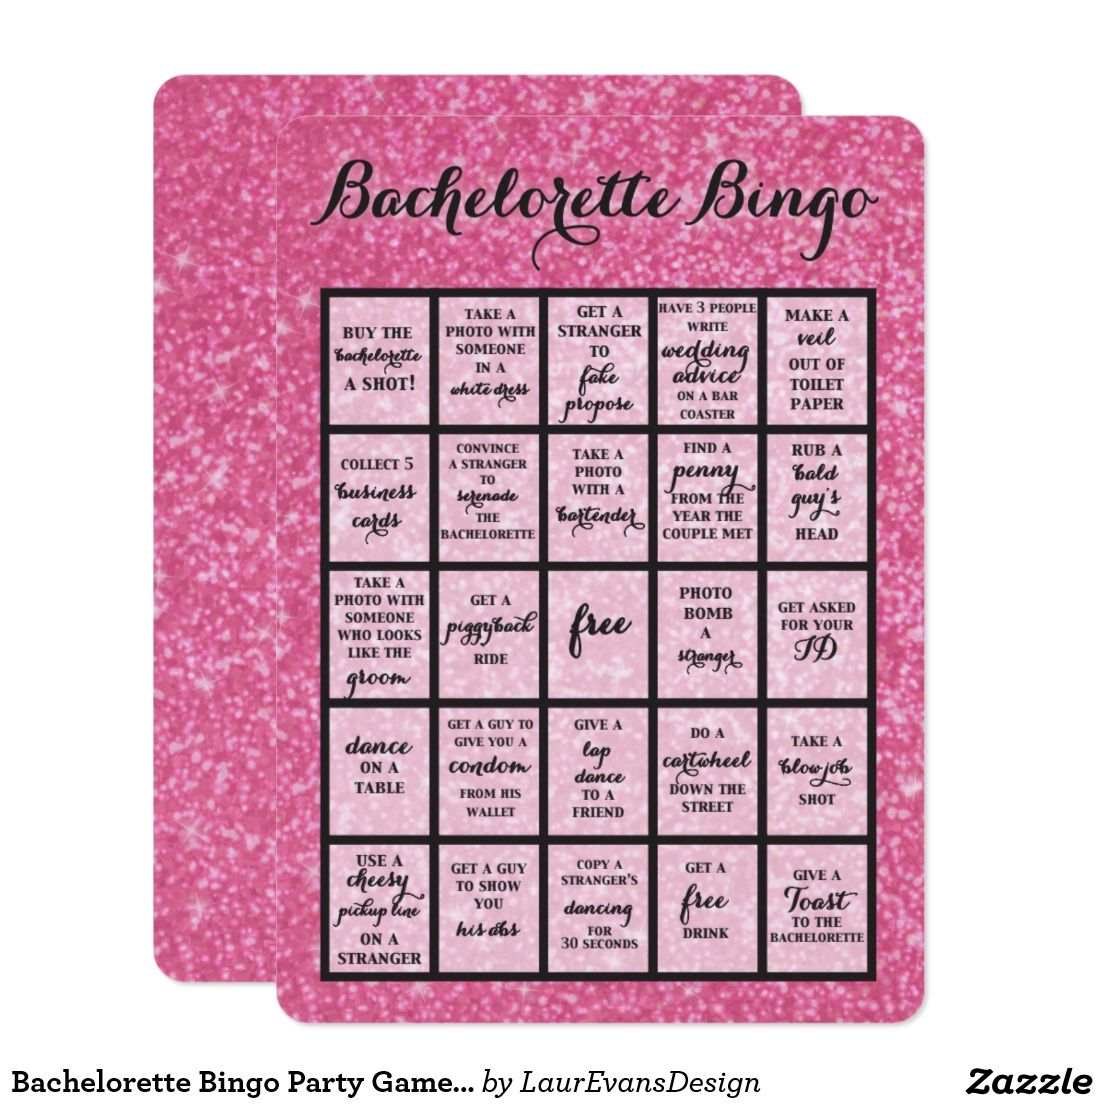 Bachelorette Bingo Party Game in Hot Pink Card | Bingo party, Pink ...